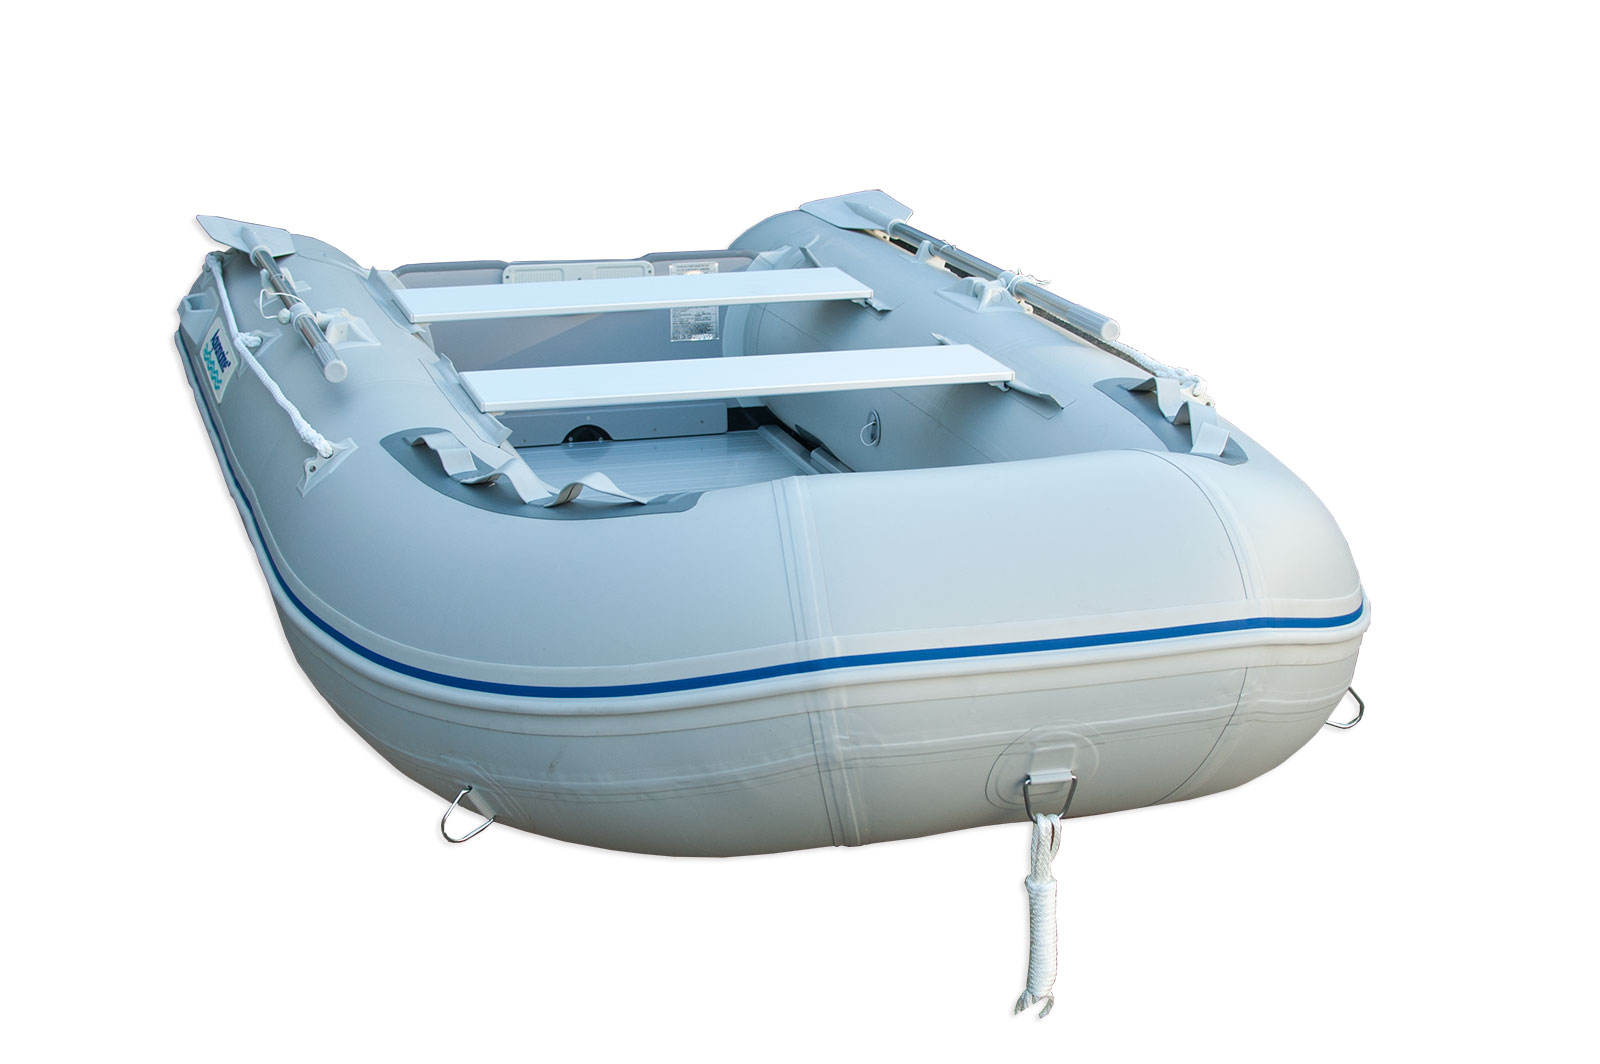 10 Ft Inflatable Boat With Aluminum Floor